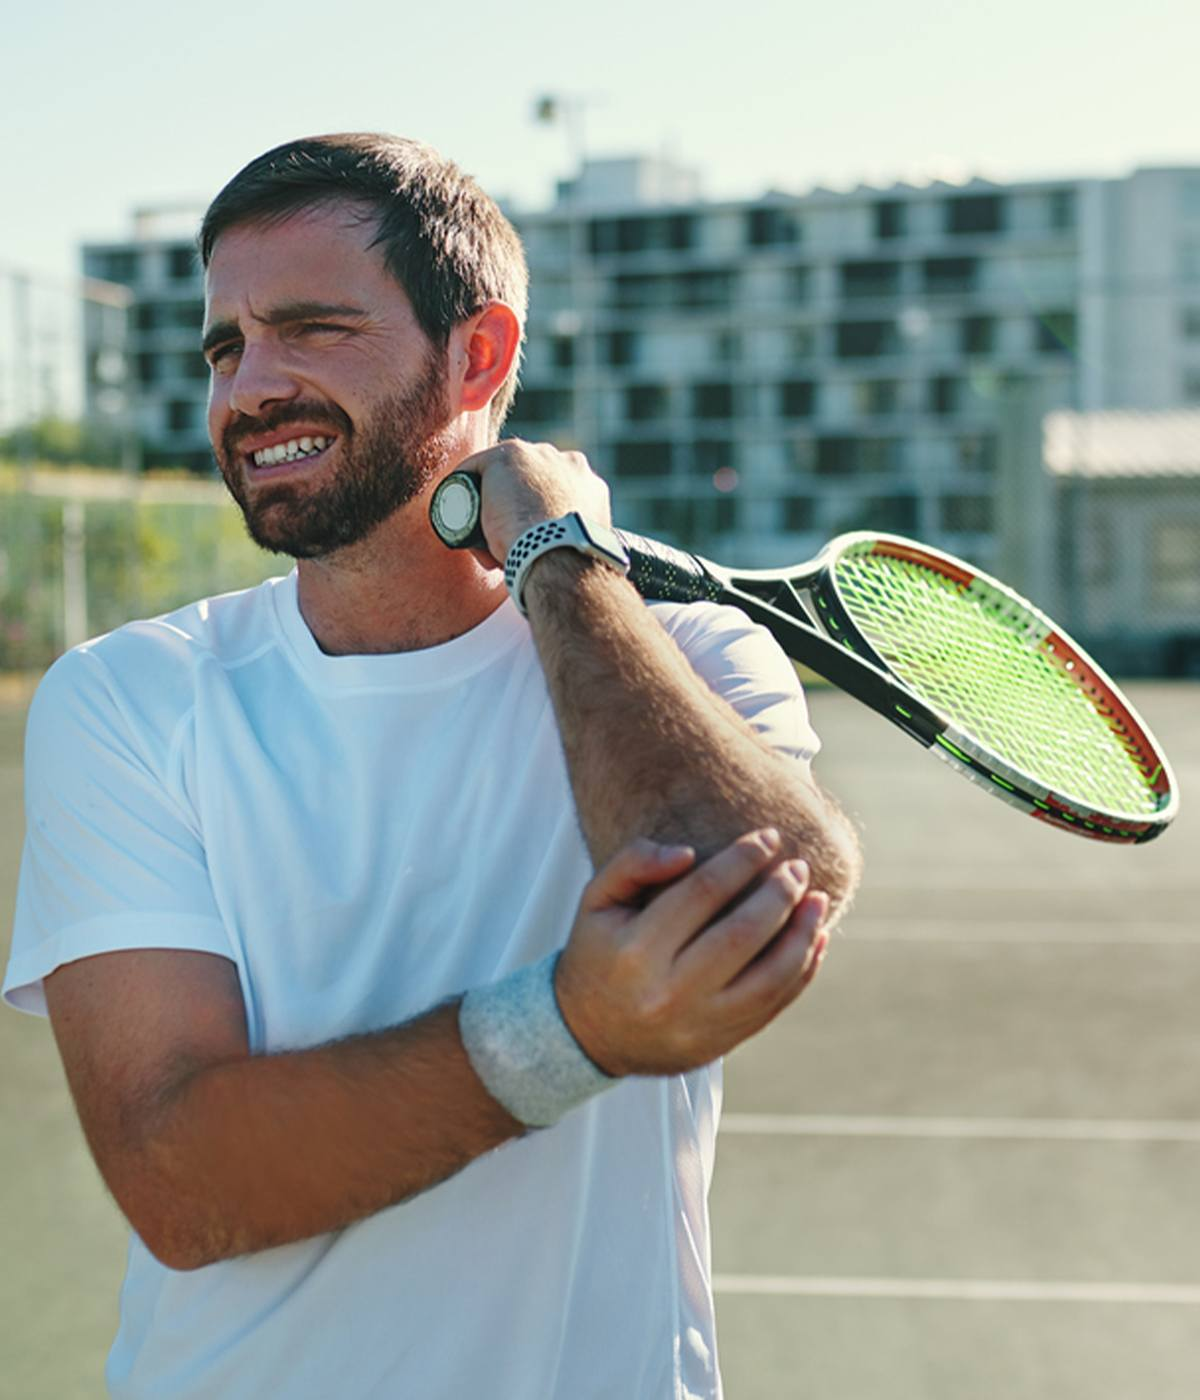 Male tennis player suffering from Tennis Elbow